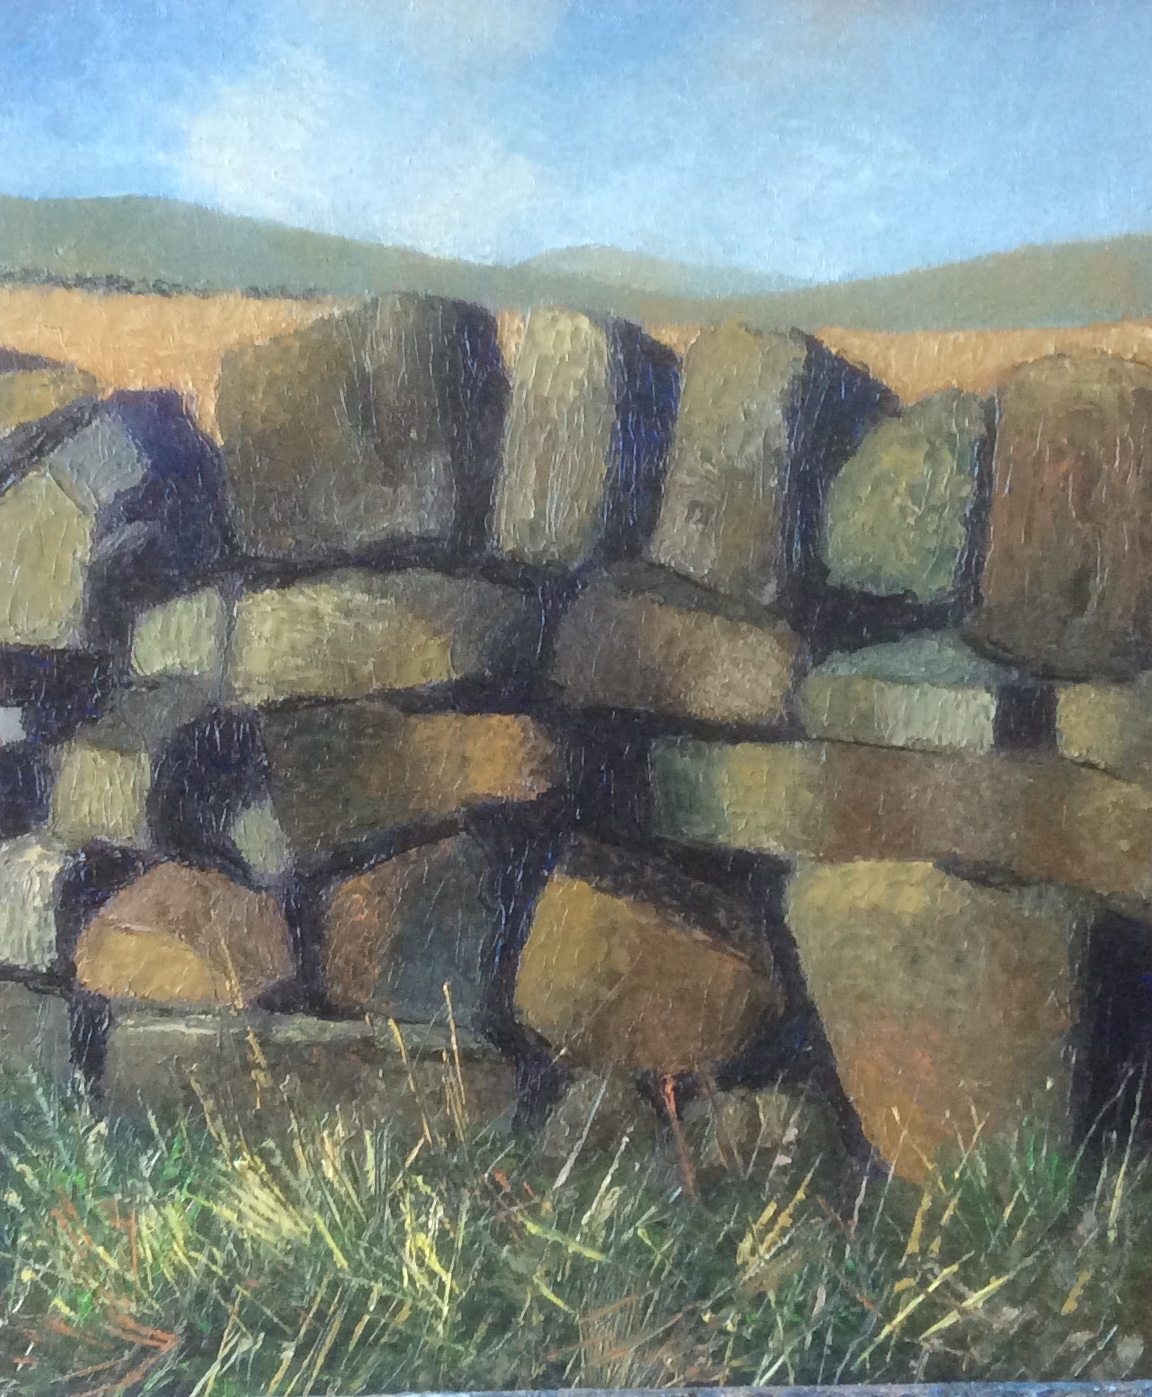 Yorkshire dry stone wall